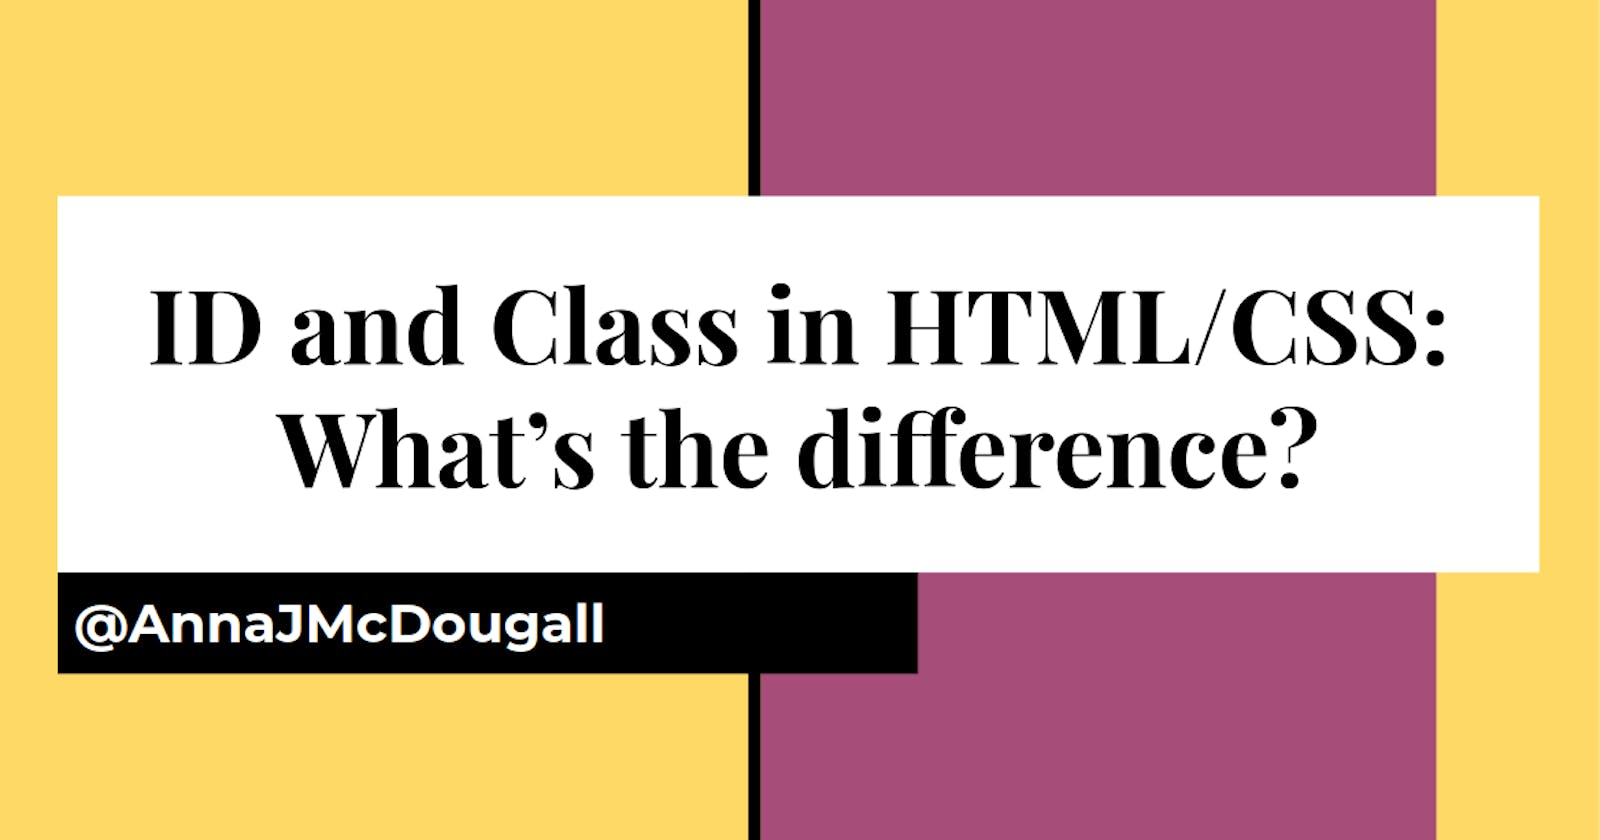 ID and Class in HTML: What's the difference?